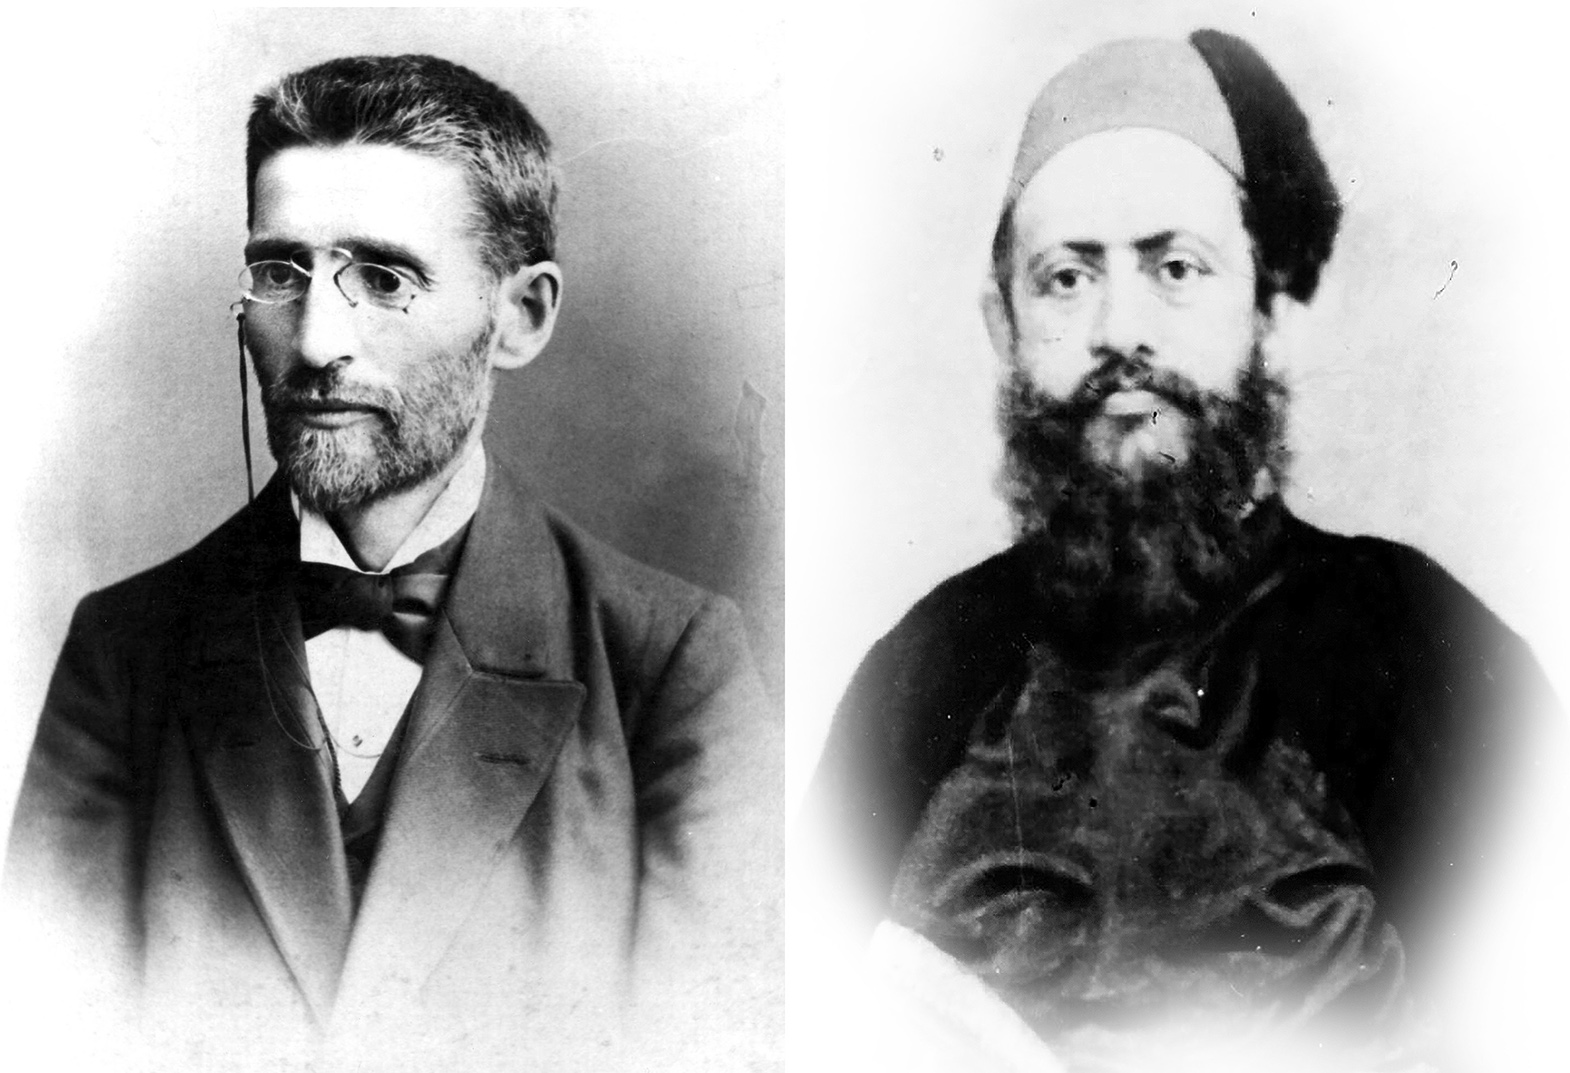 A pair of black-and-white portraits of Ben Yehuda, wearing a tie, overcoat and glasses, and Hataria wearing a fez in a traditional overcoat